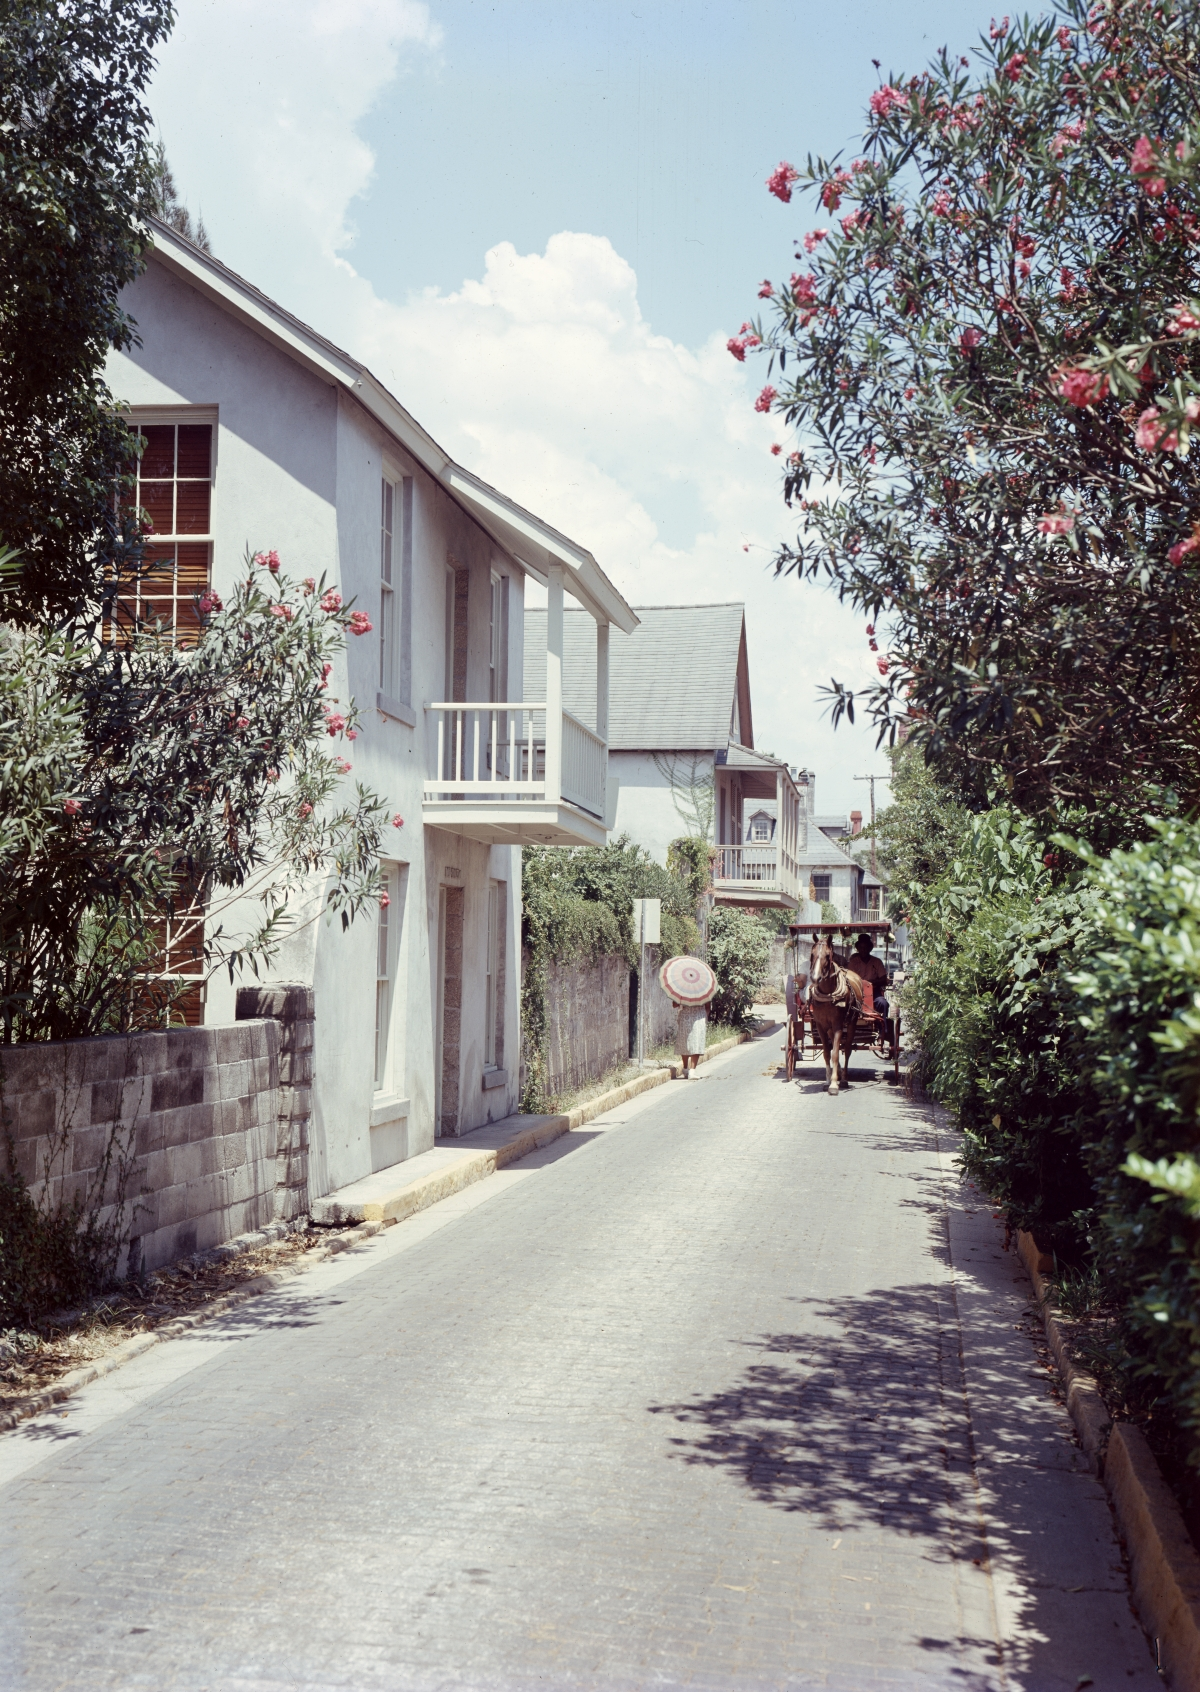 Tourist carriage riding down Aviles Street in St. Augustine.